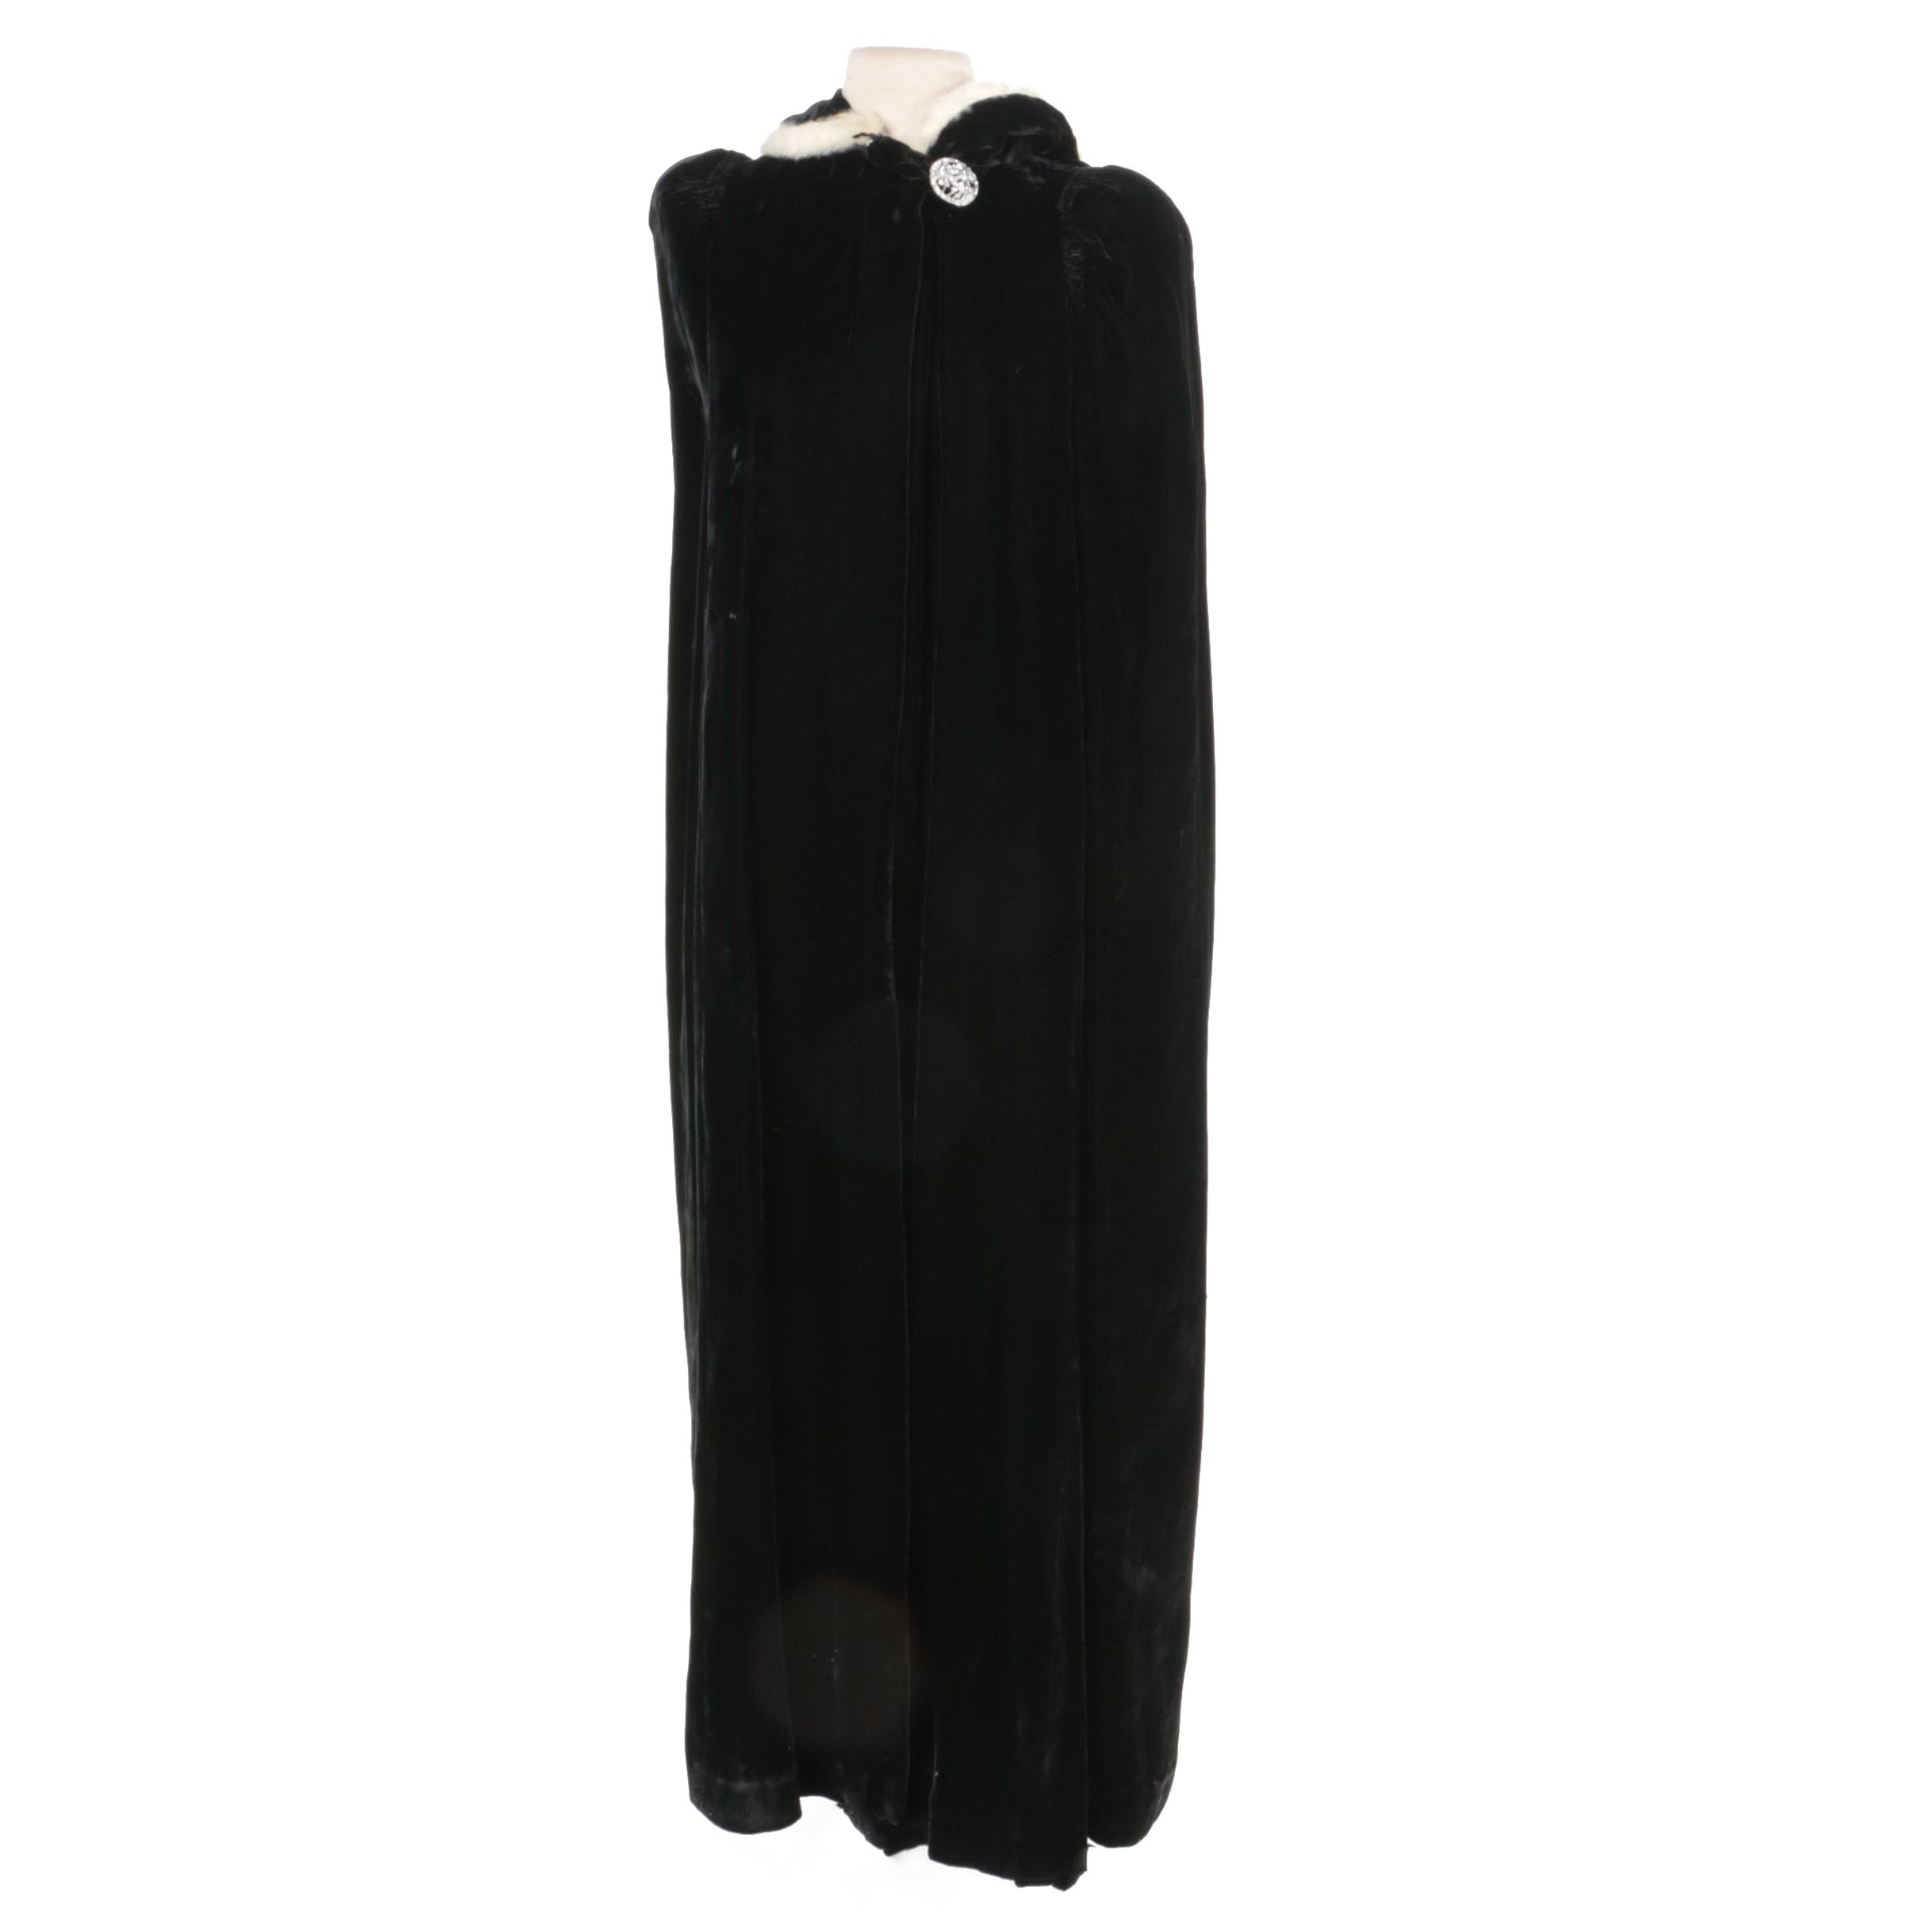 Women's 1950s Vintage Black Velvet Cloak with Rhinestone Closure